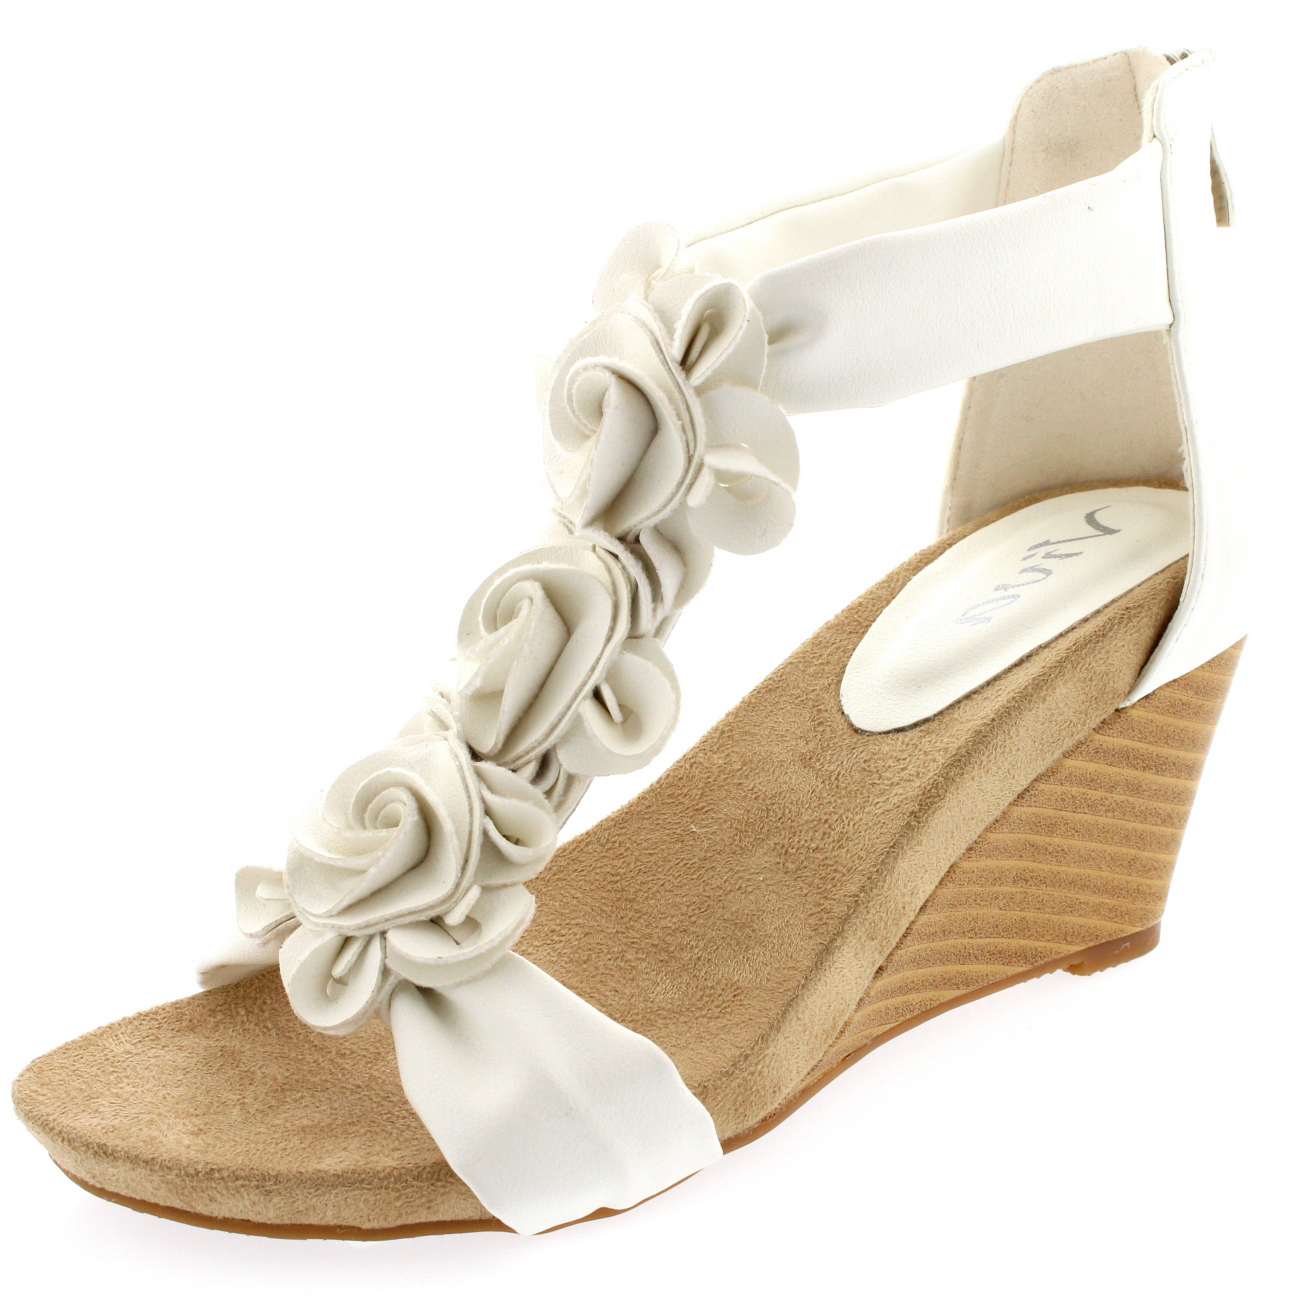 Womens Floral Low Wedge Heel Open Toe Summer Ankle Strap